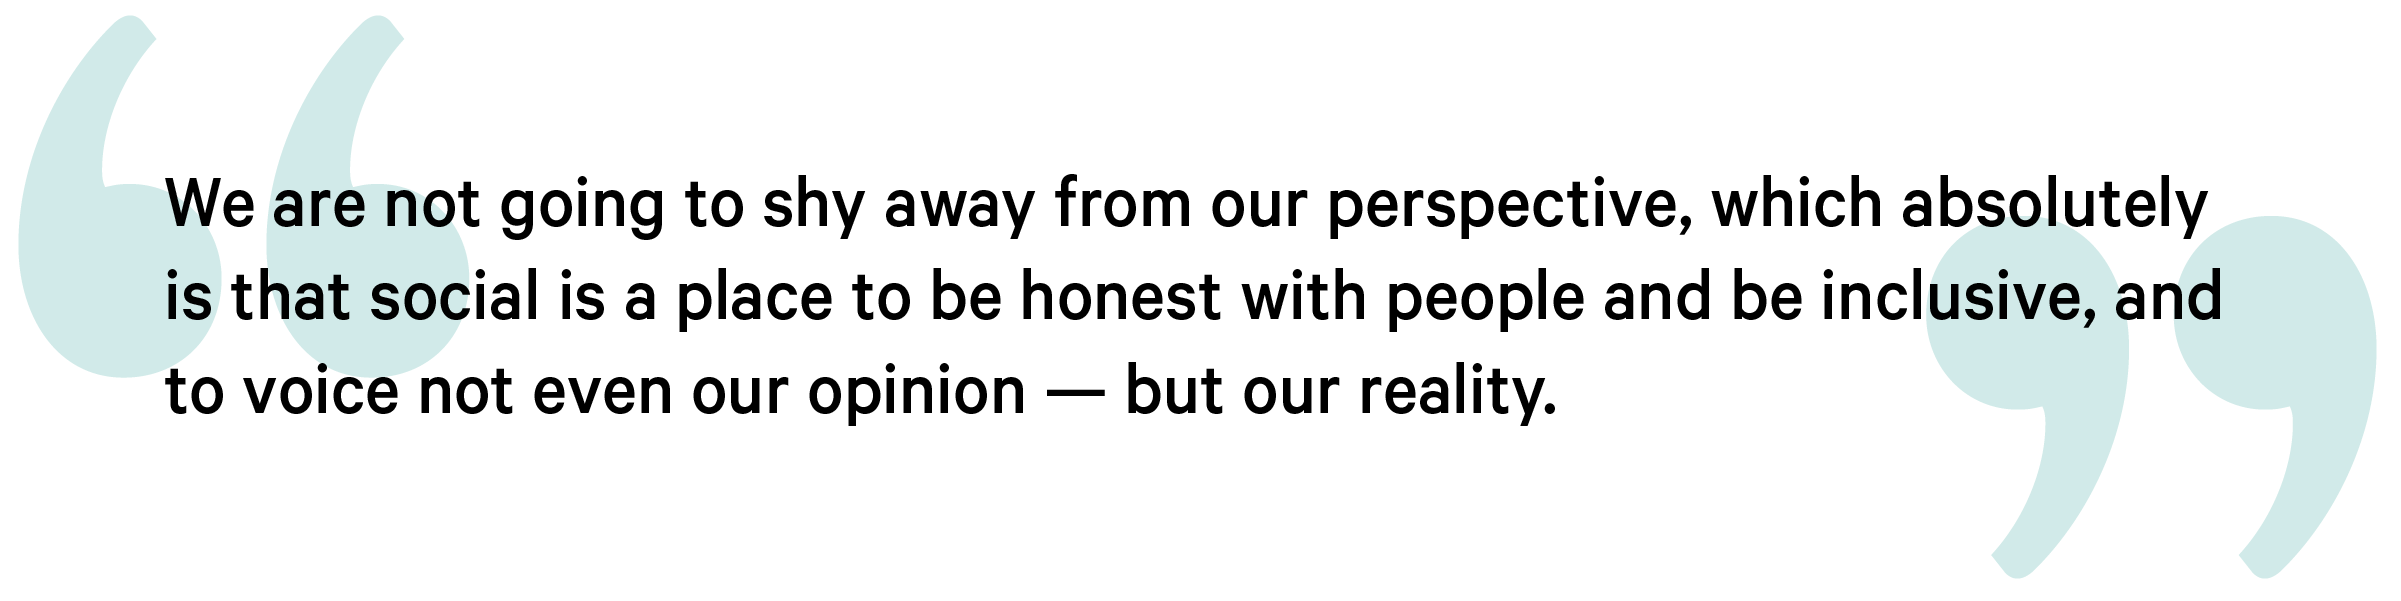 quote Hatch Spectrum we are not going to shy away from our perspective, which absolutely is that social is a place to be honest with people and be inclusive, and to voice not even our opinion — but our reality